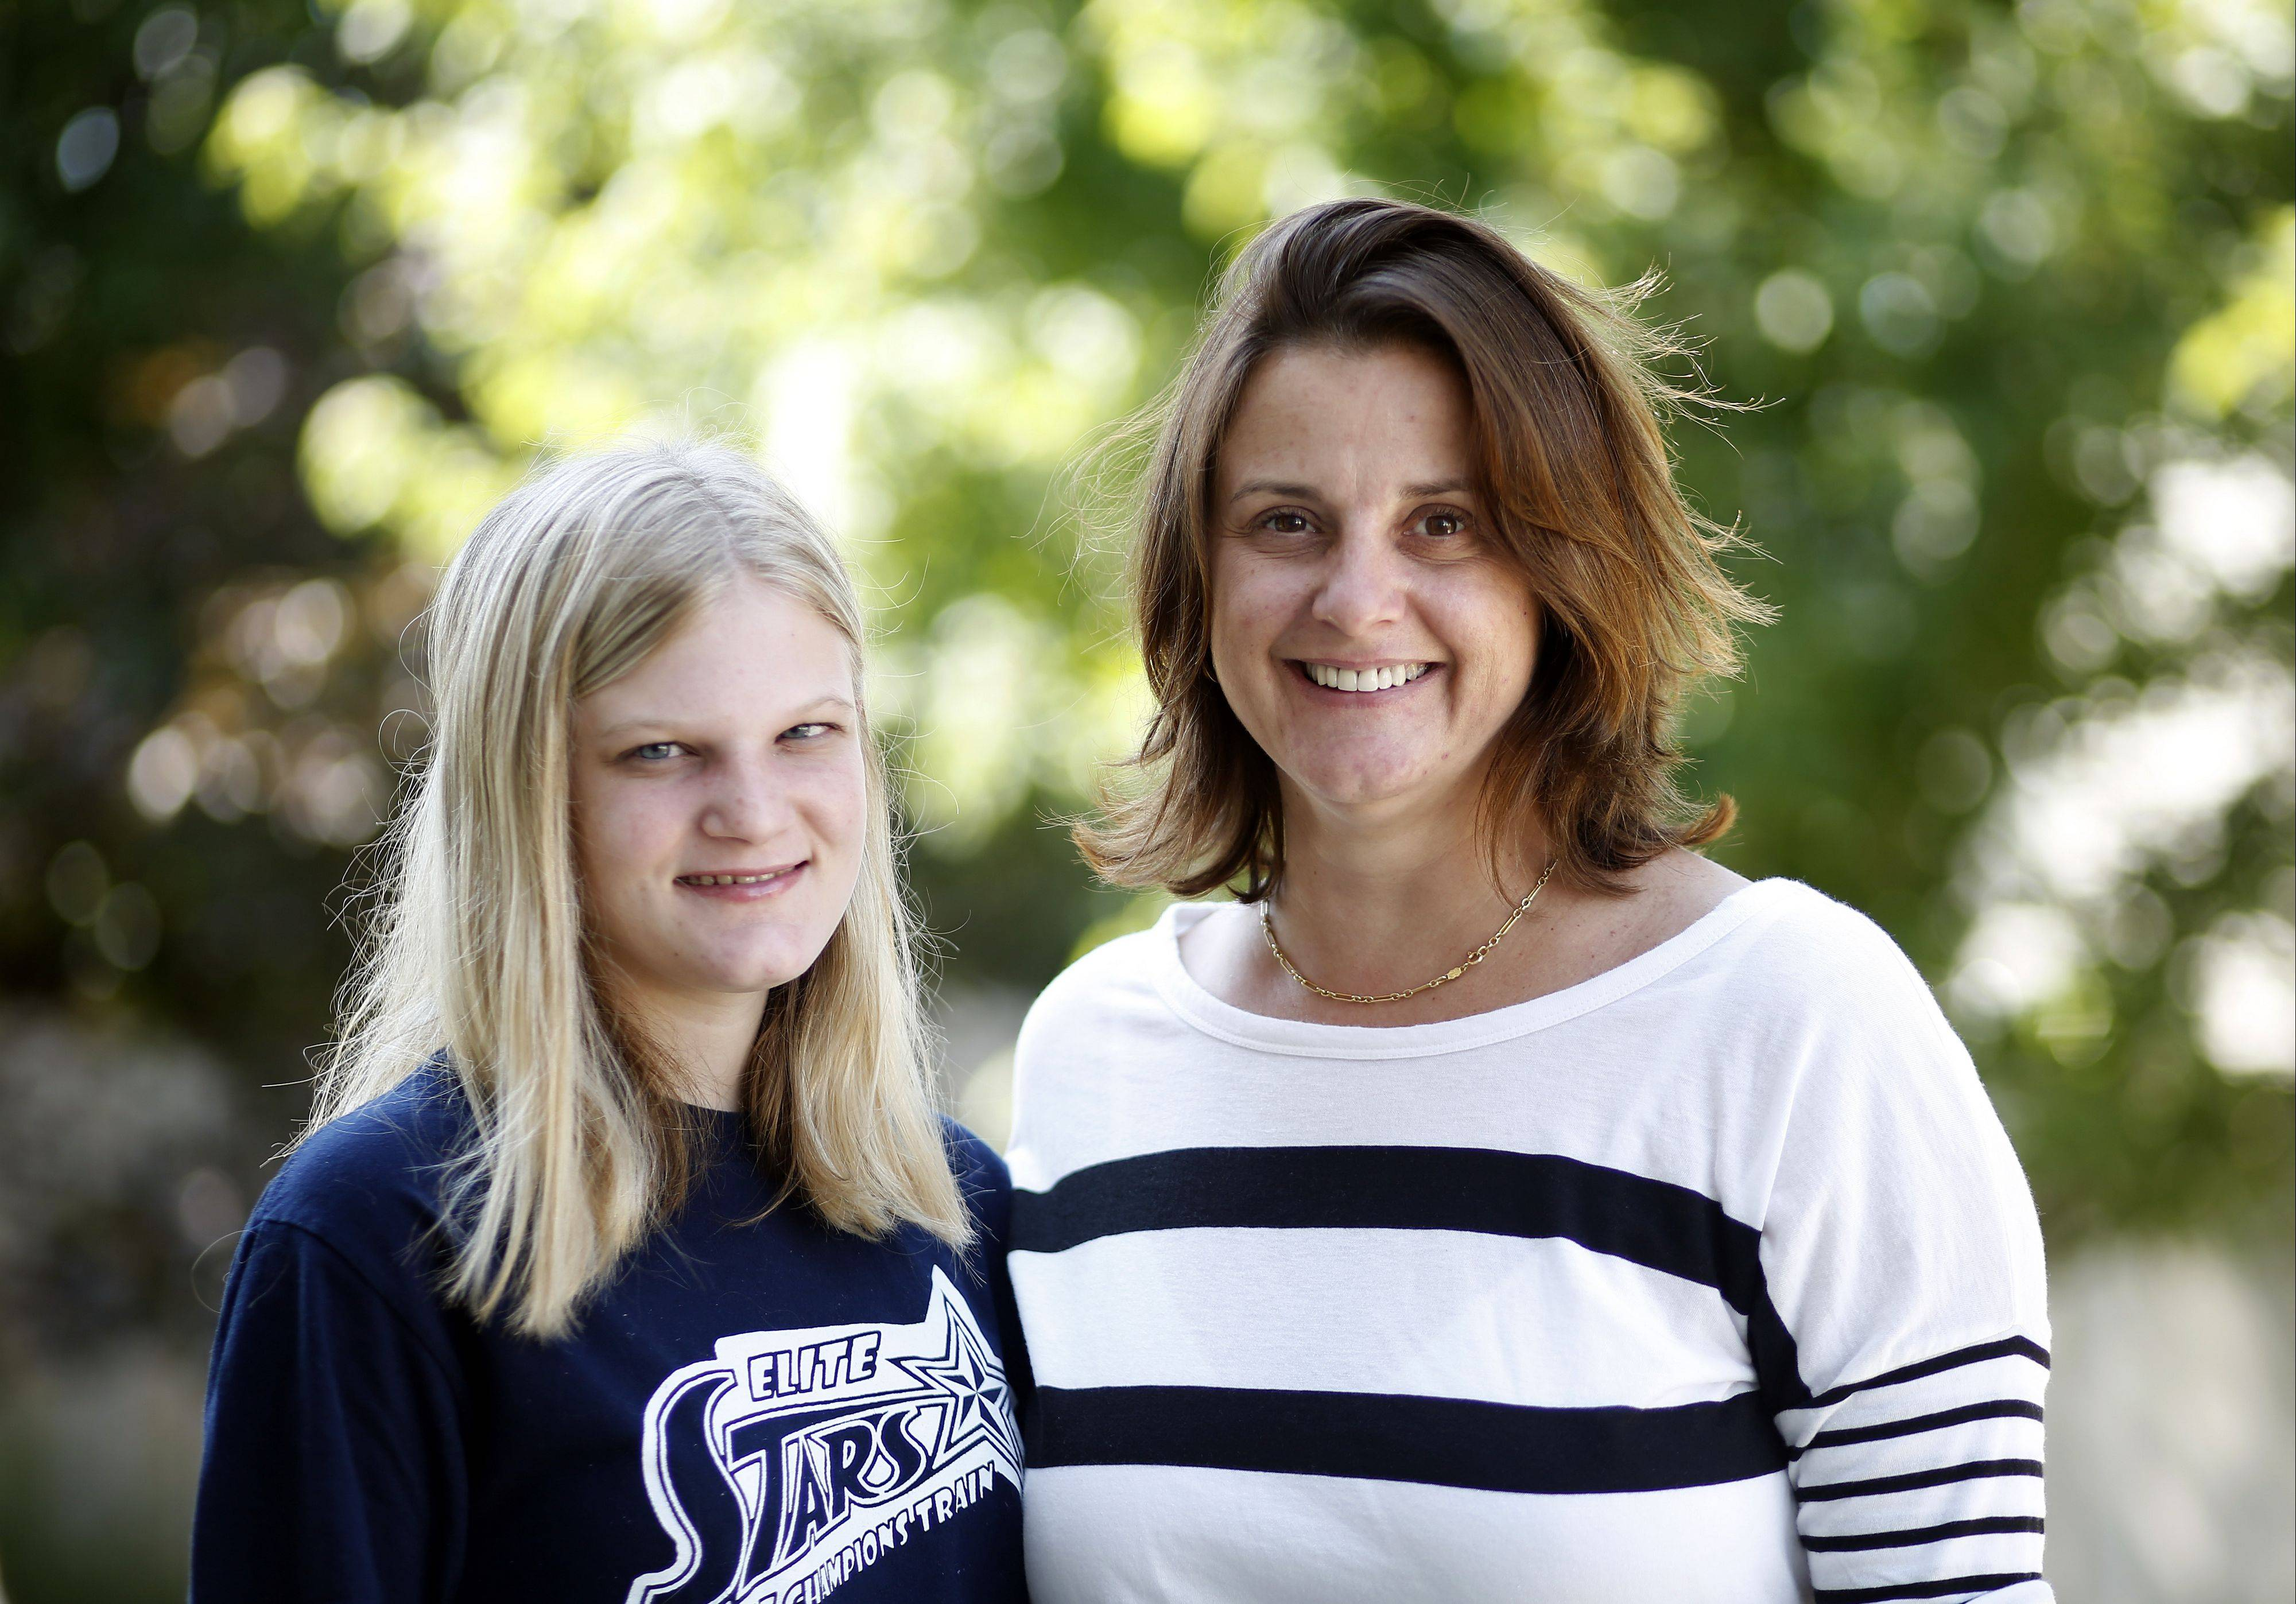 Tess Podraza, 18, of Huntley and her mother, Tia, talk about LIGHT, the transition program that Huntley Area School District 158 will offer to special education students.